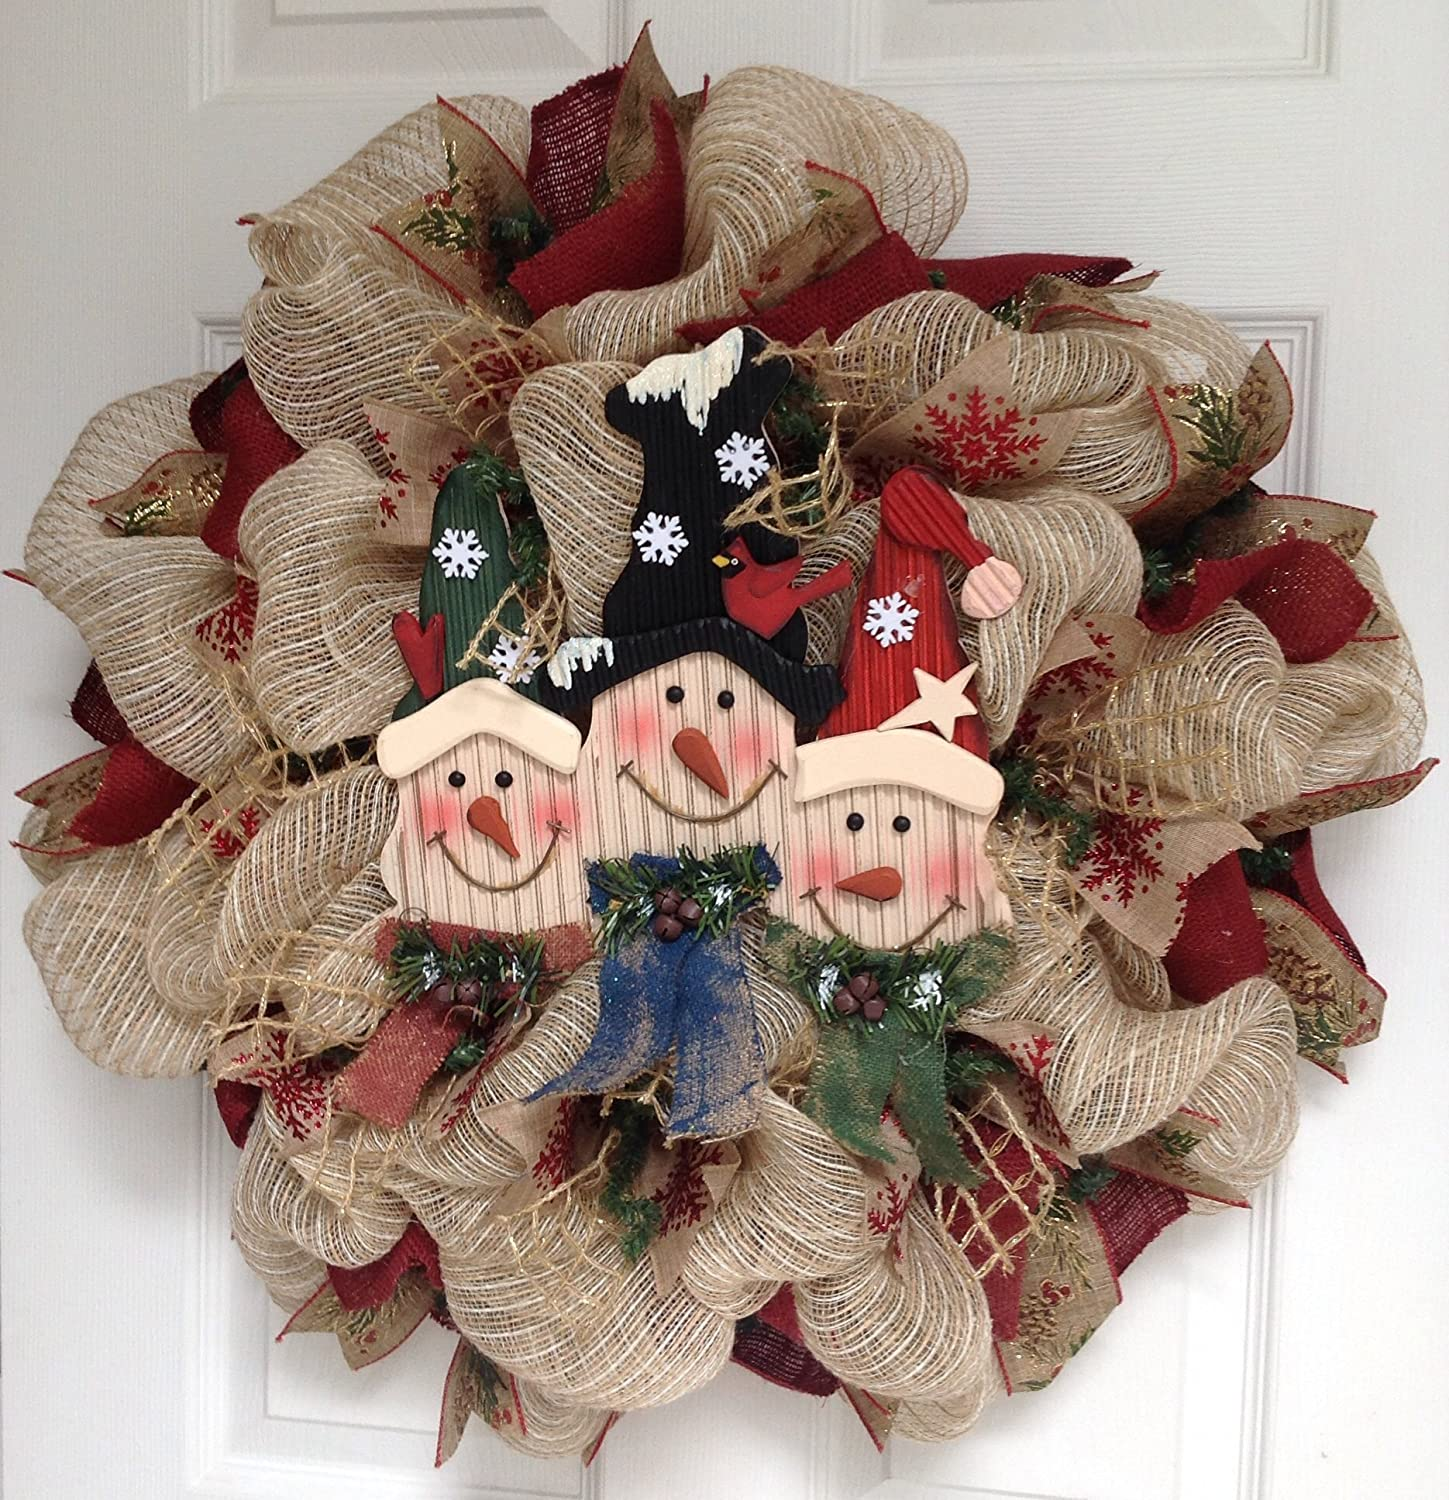 Rustic Country Snowman Mesh Wreaths